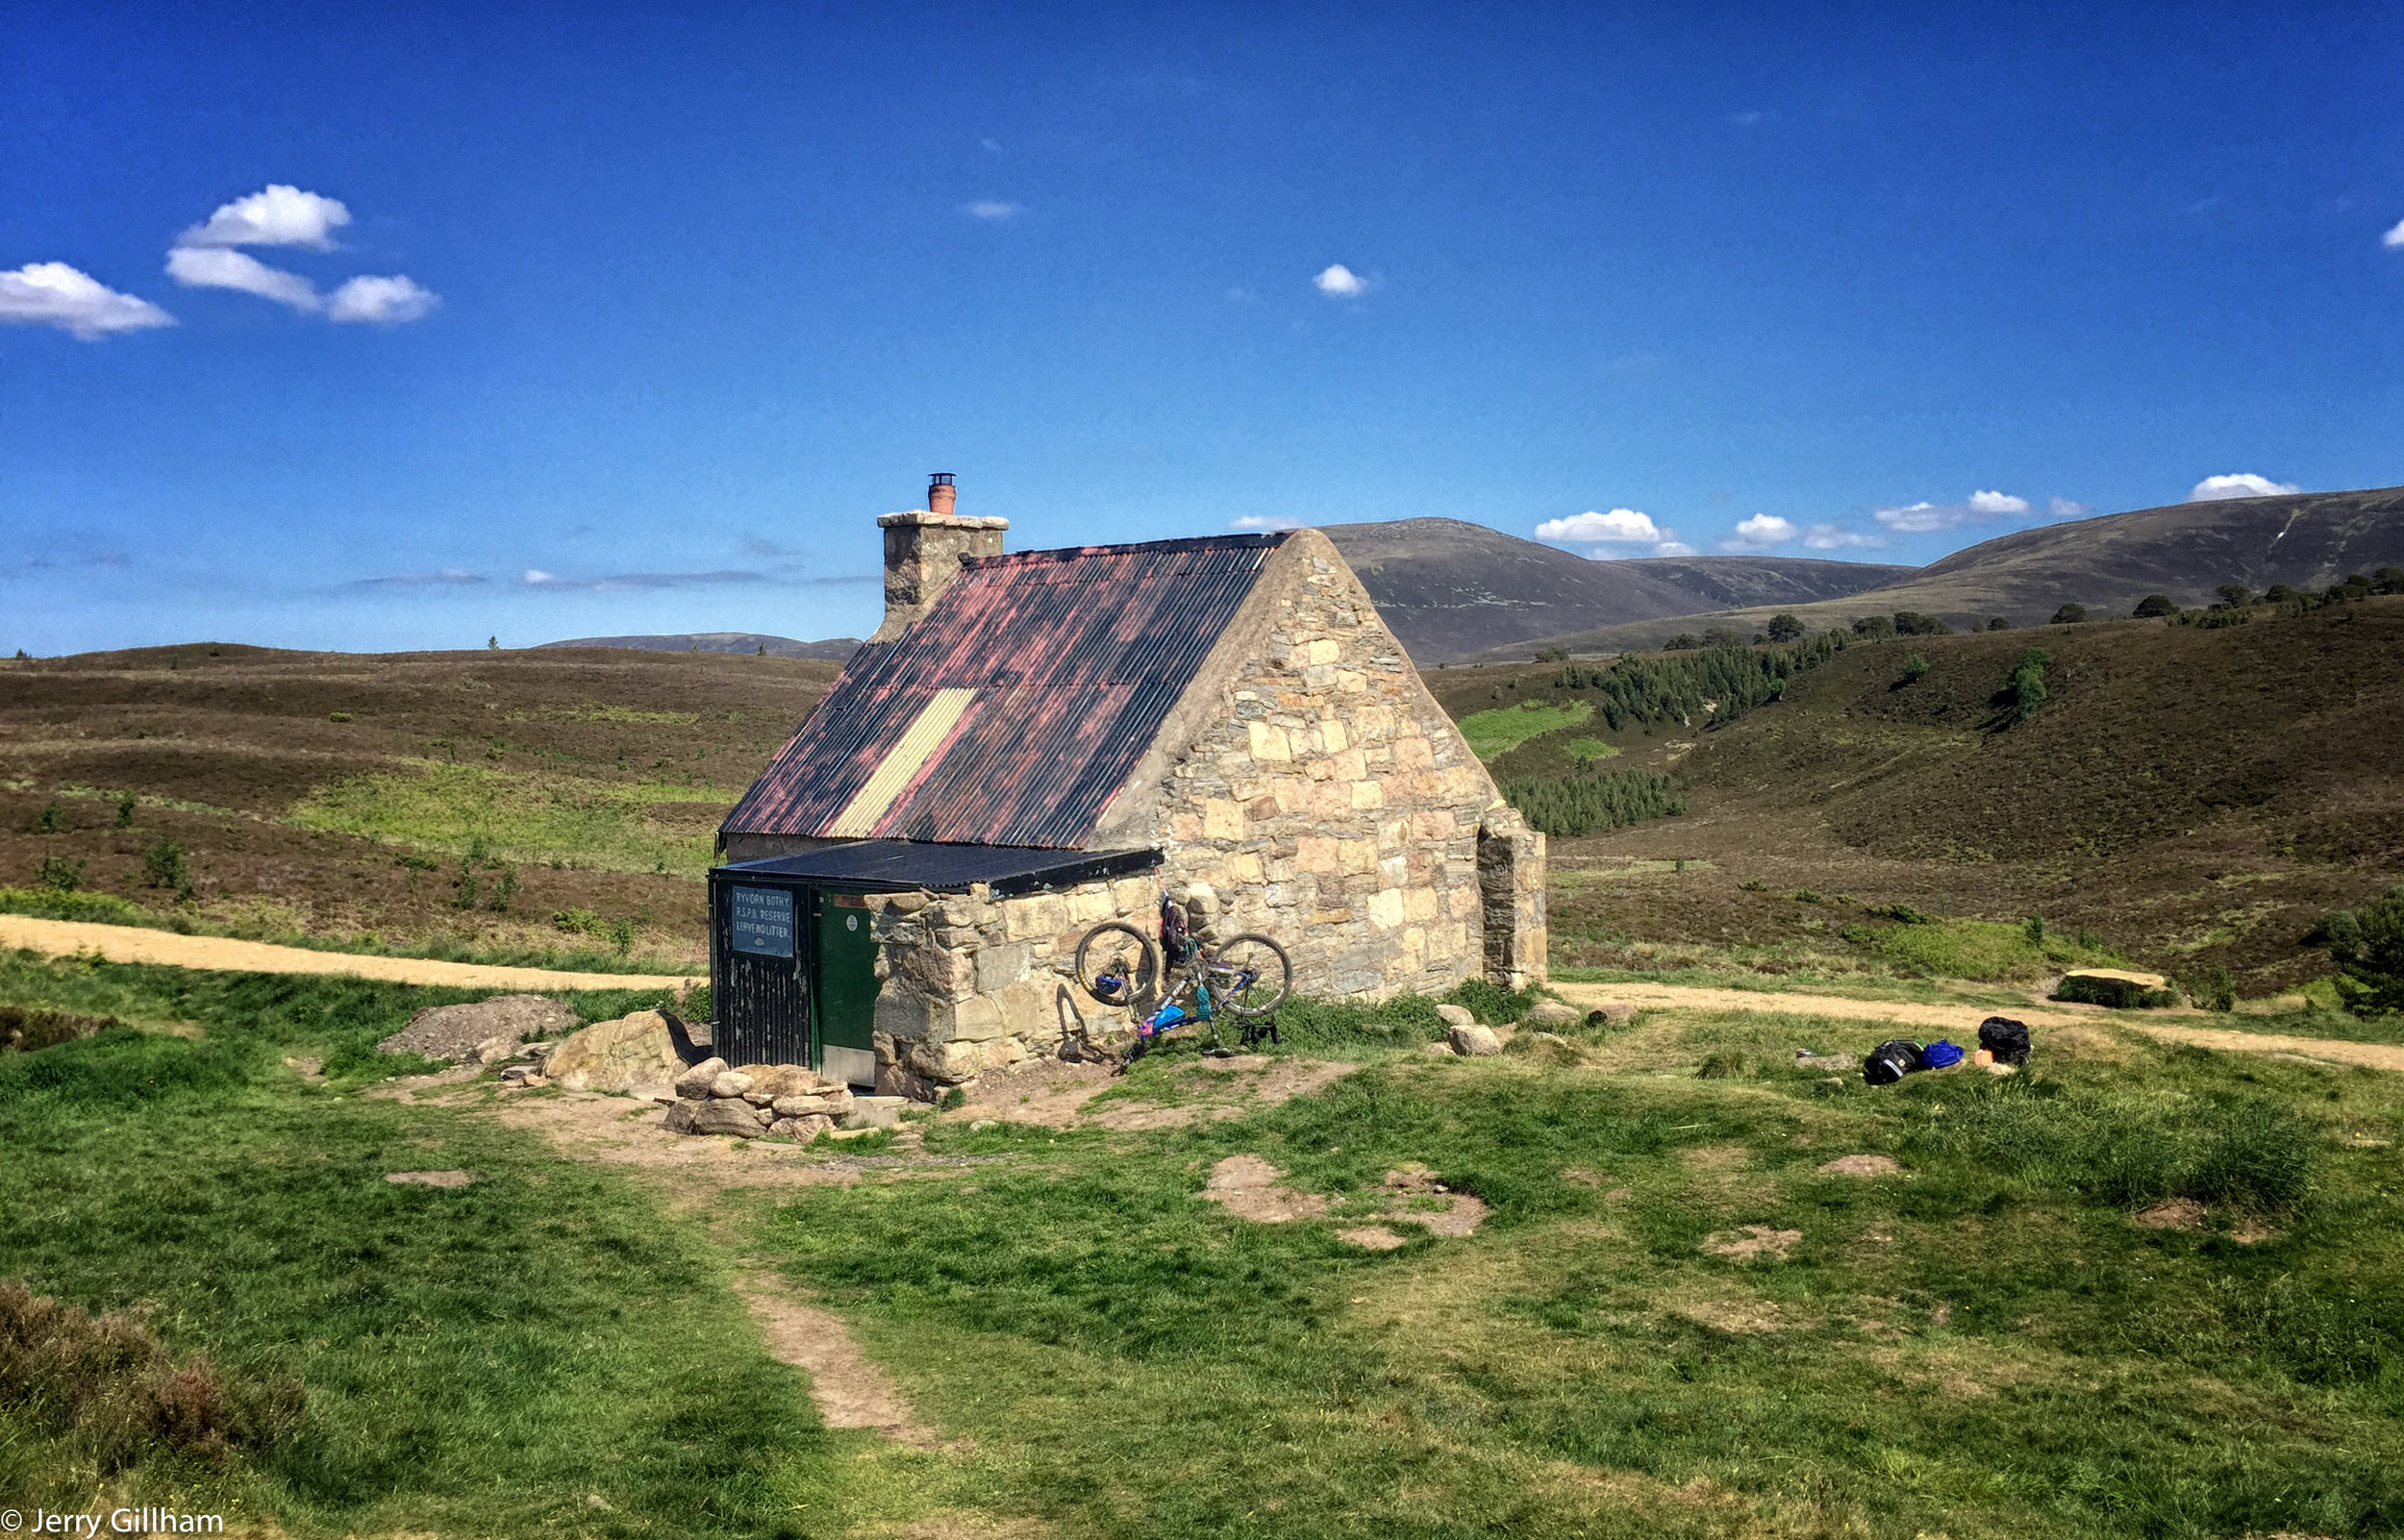 Ryvoan bothy. There were plenty of people around during the day, and early evening, but I was the only one staying that night. Sitting outside that evening was glorious; warm, calm but with enough breeze to detract midges, at least two cuckoos calling.